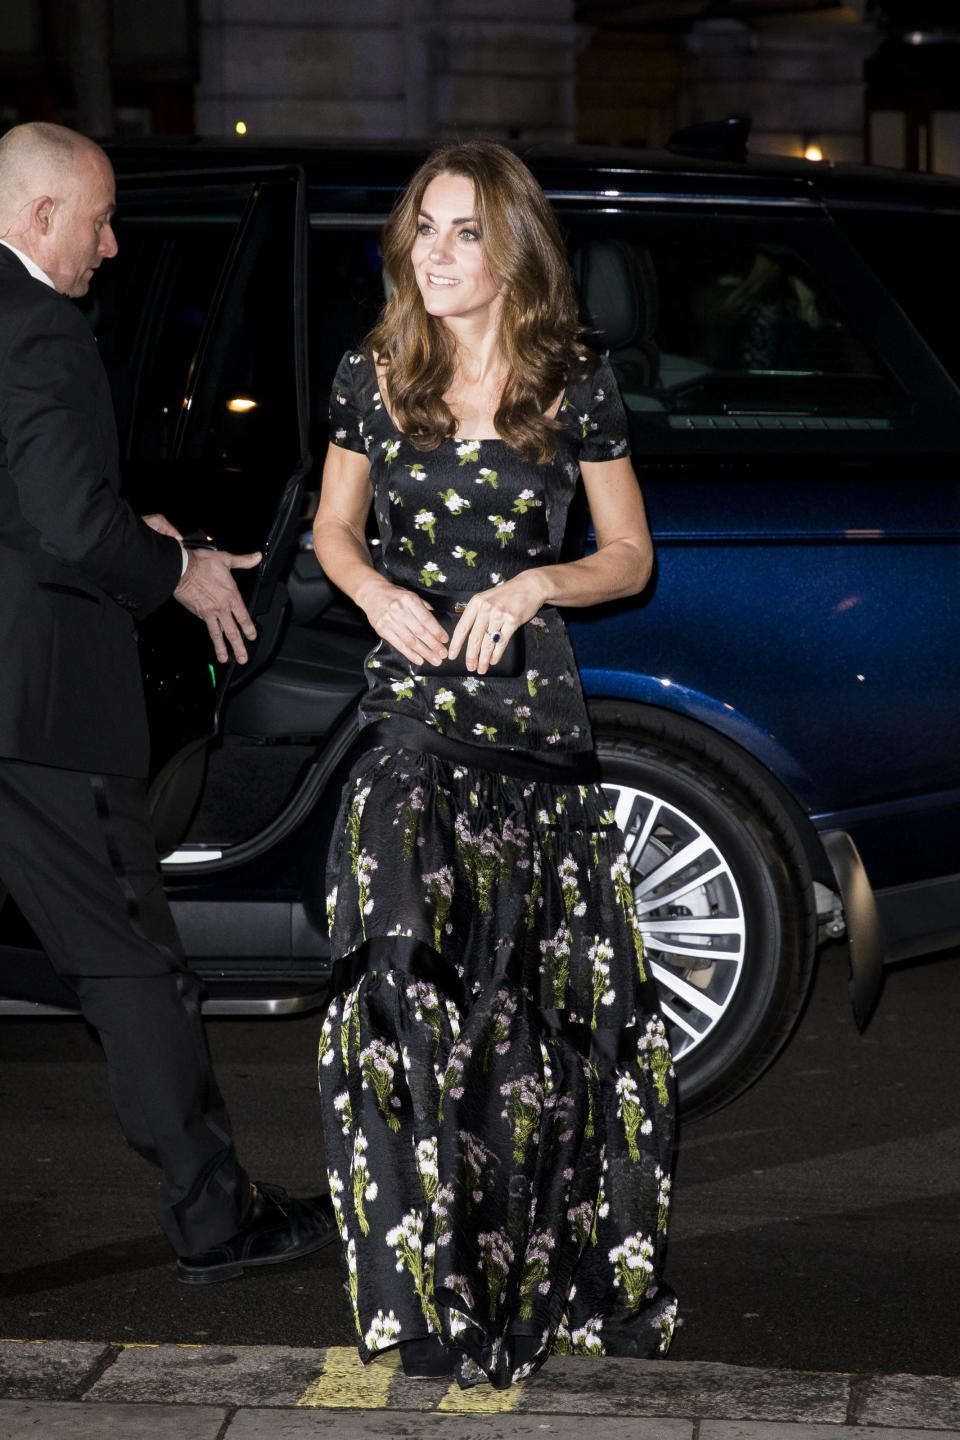 The Duchess arriving at the Portrait Gala [Photo: Getty]